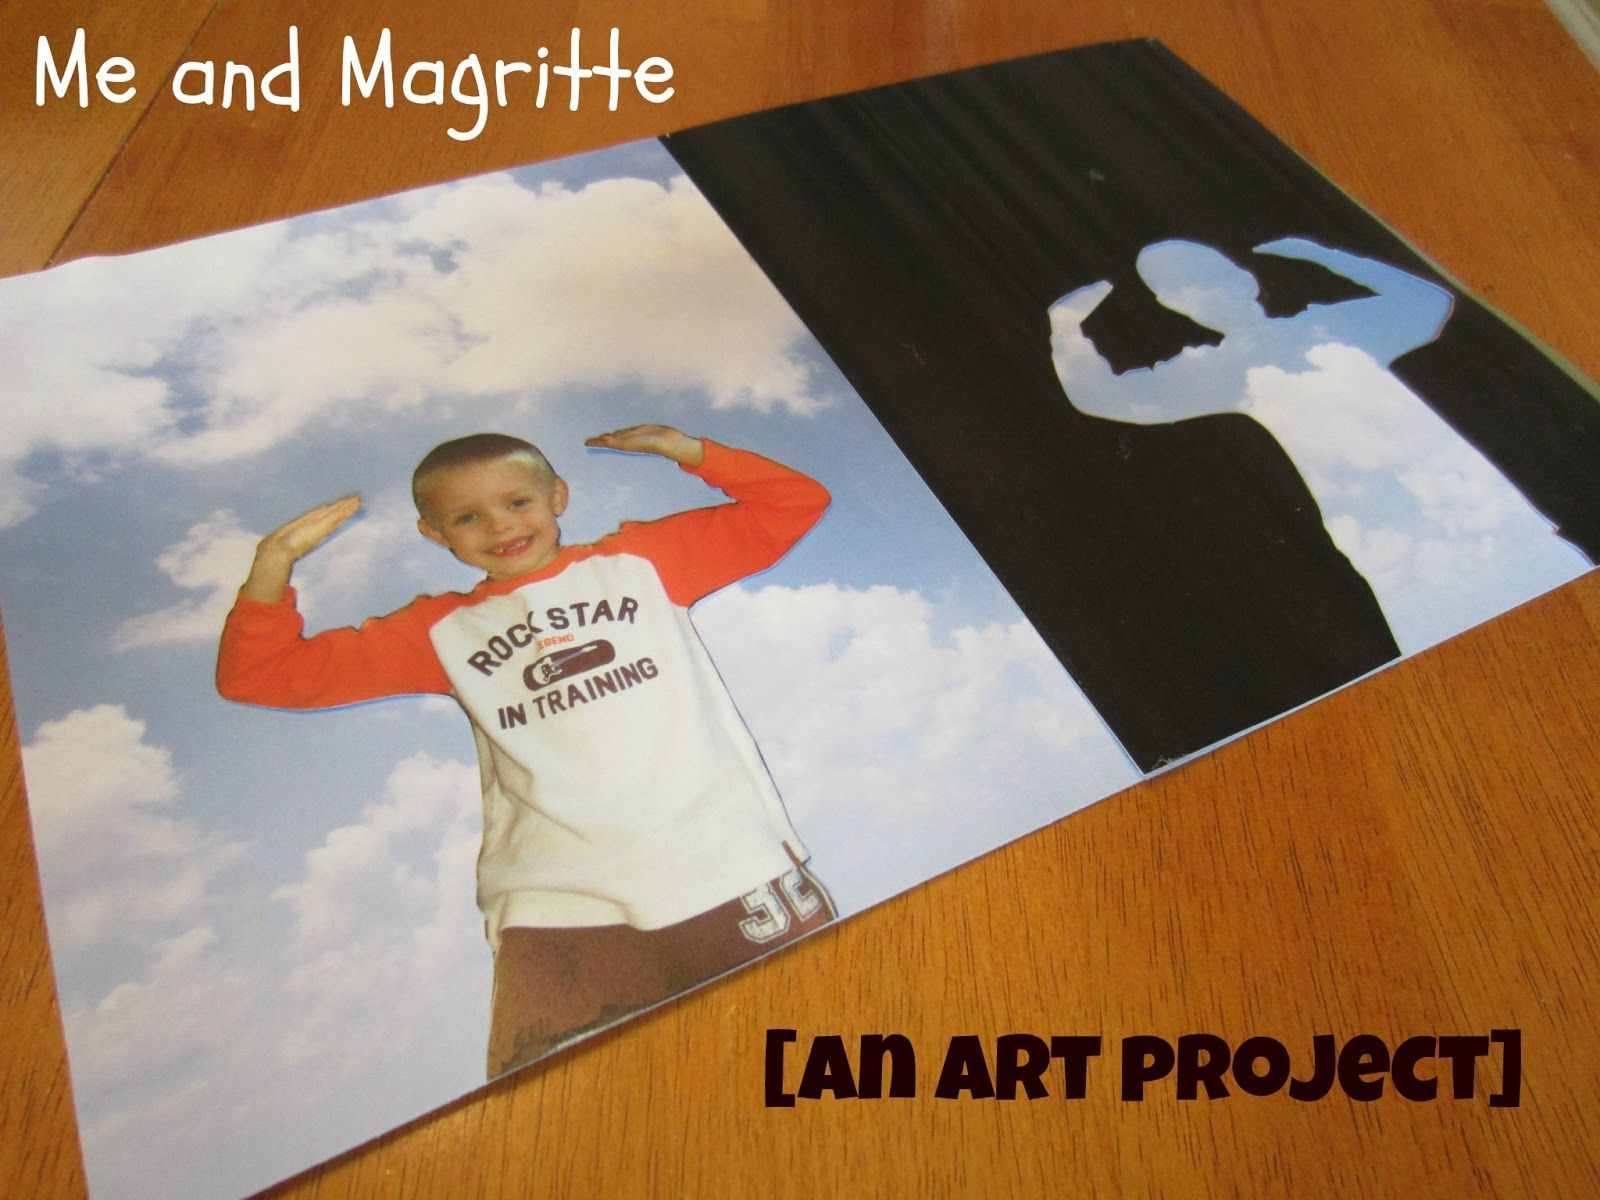 Me and Magritte [an Art Project]- great to show negative and positive space. Has book suggestions for surrealism too.